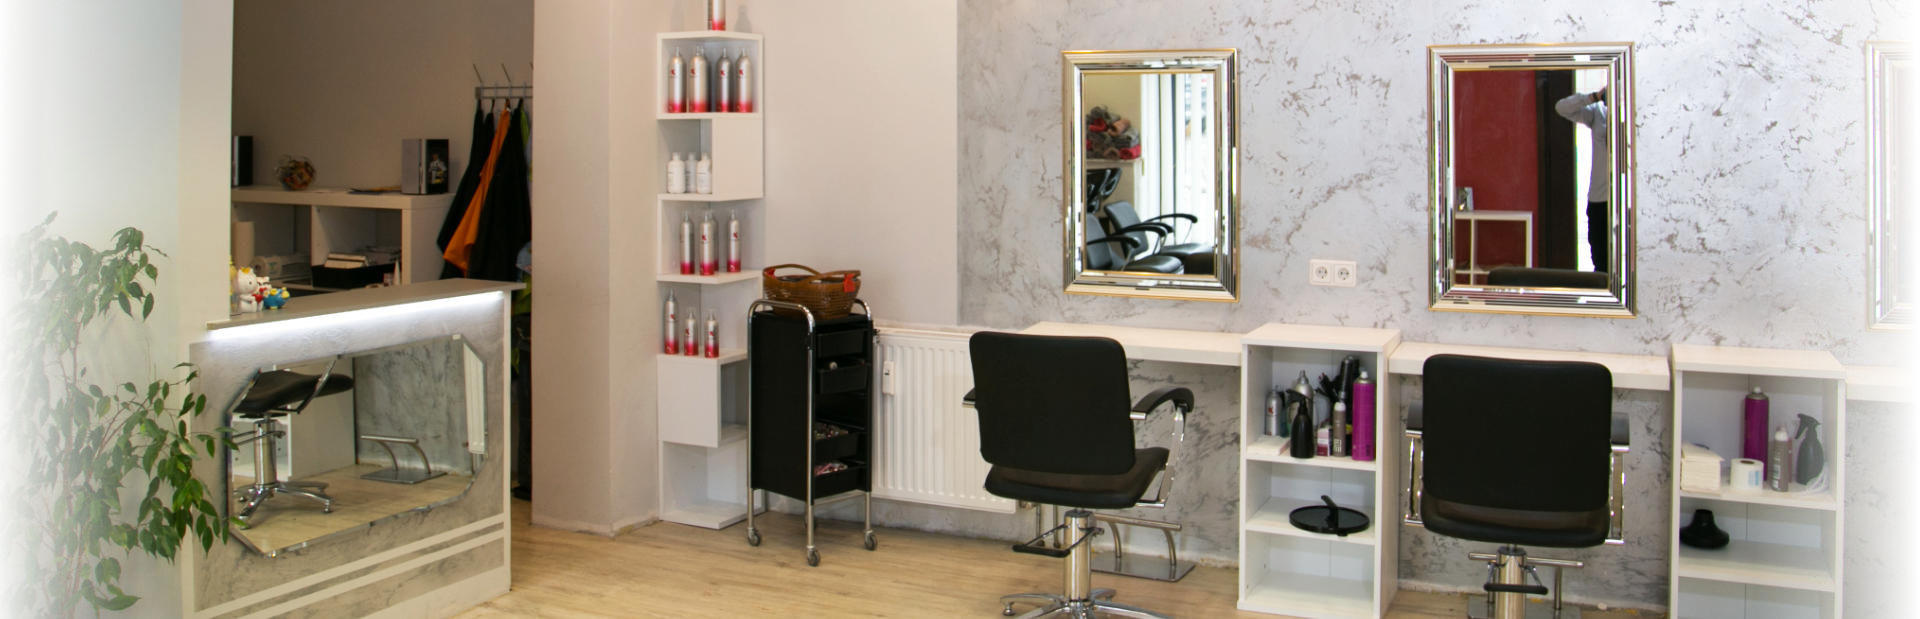 Pino Cetrancolo - International Hairstylist in Dietmannsried - Alles ist möglich